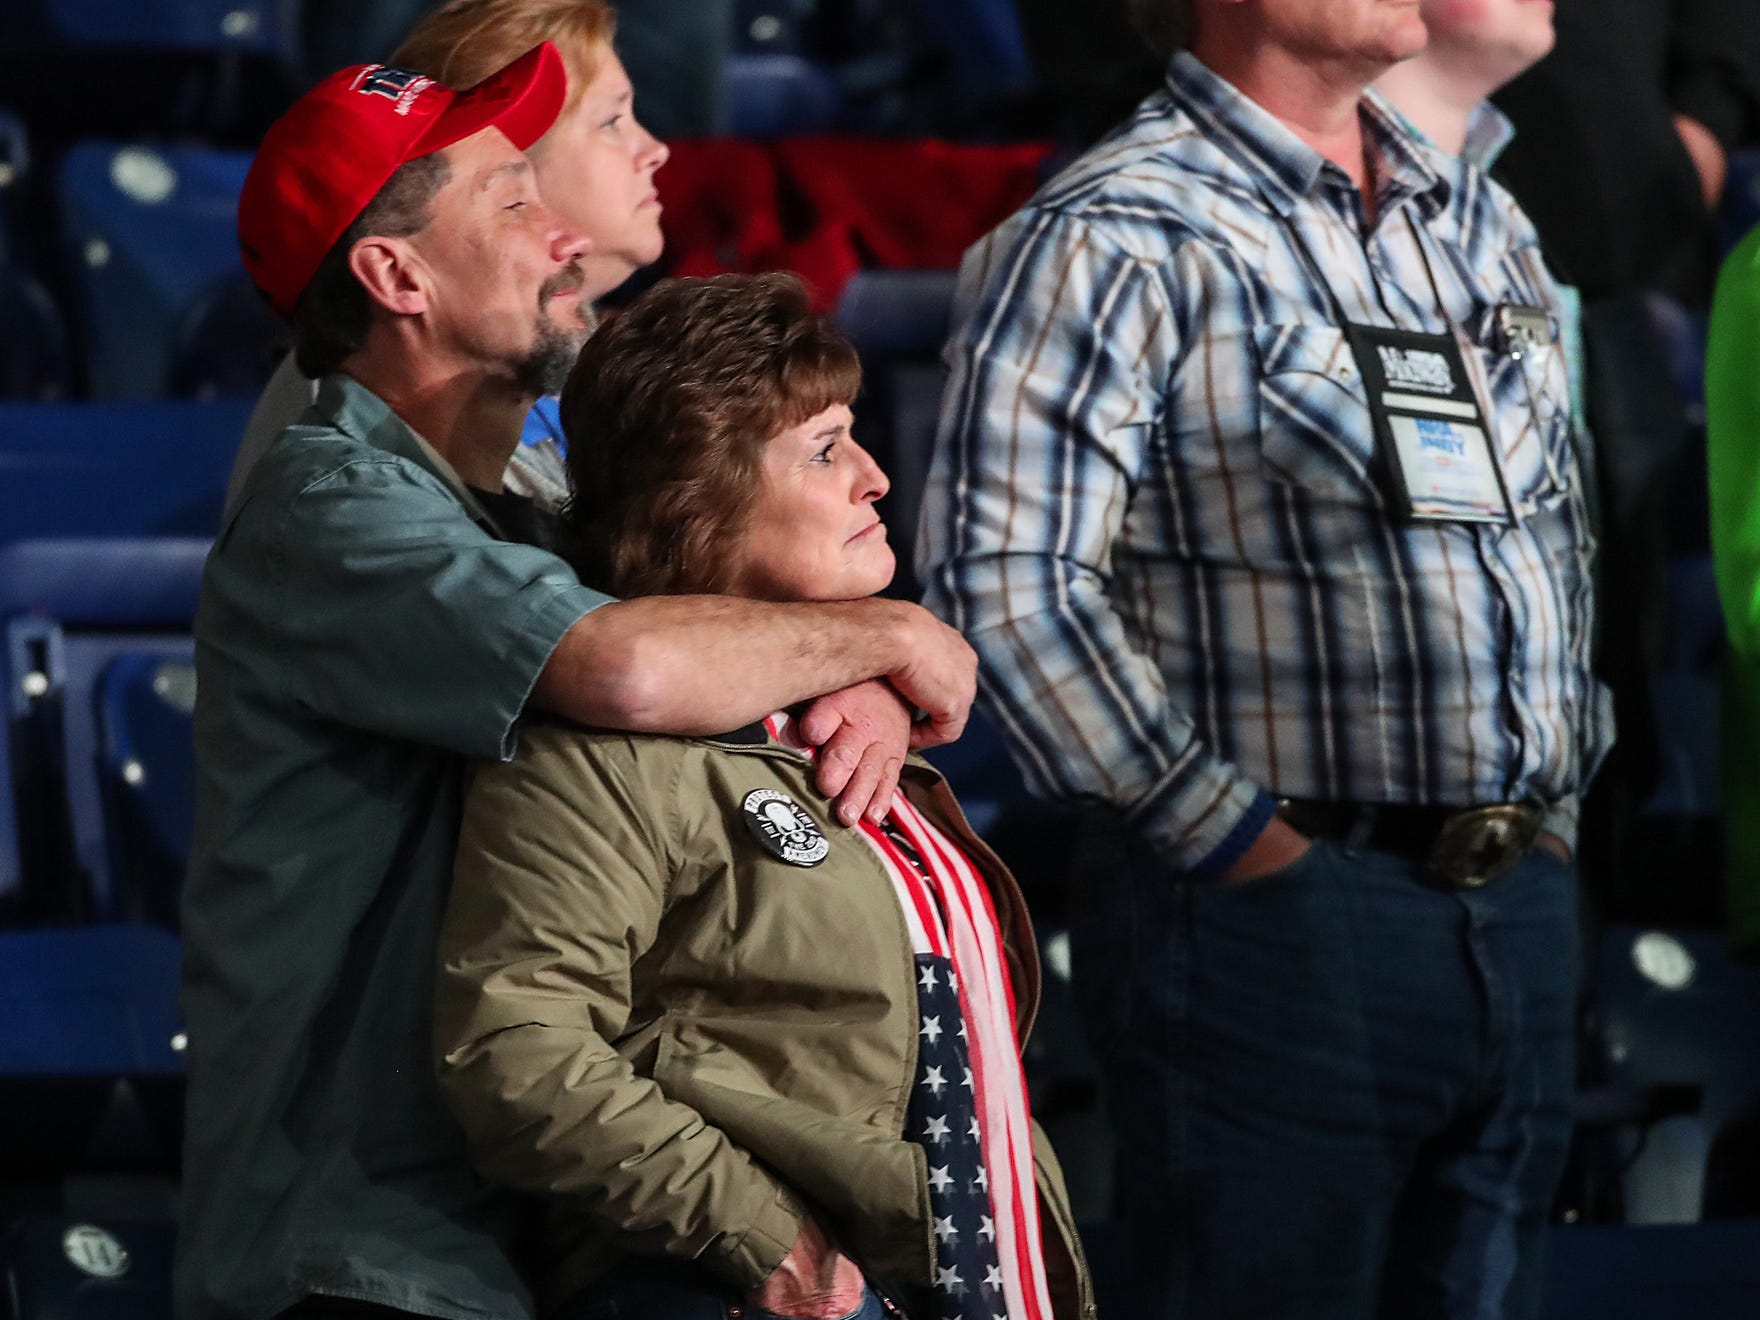 Spectators show their support as United States President Donald Trump speaks at the National Rifle Association Institute for Legislative Action Leadership Forum, Friday, April 26, 2019, at Lucas Oil Stadium in Indianapolis.